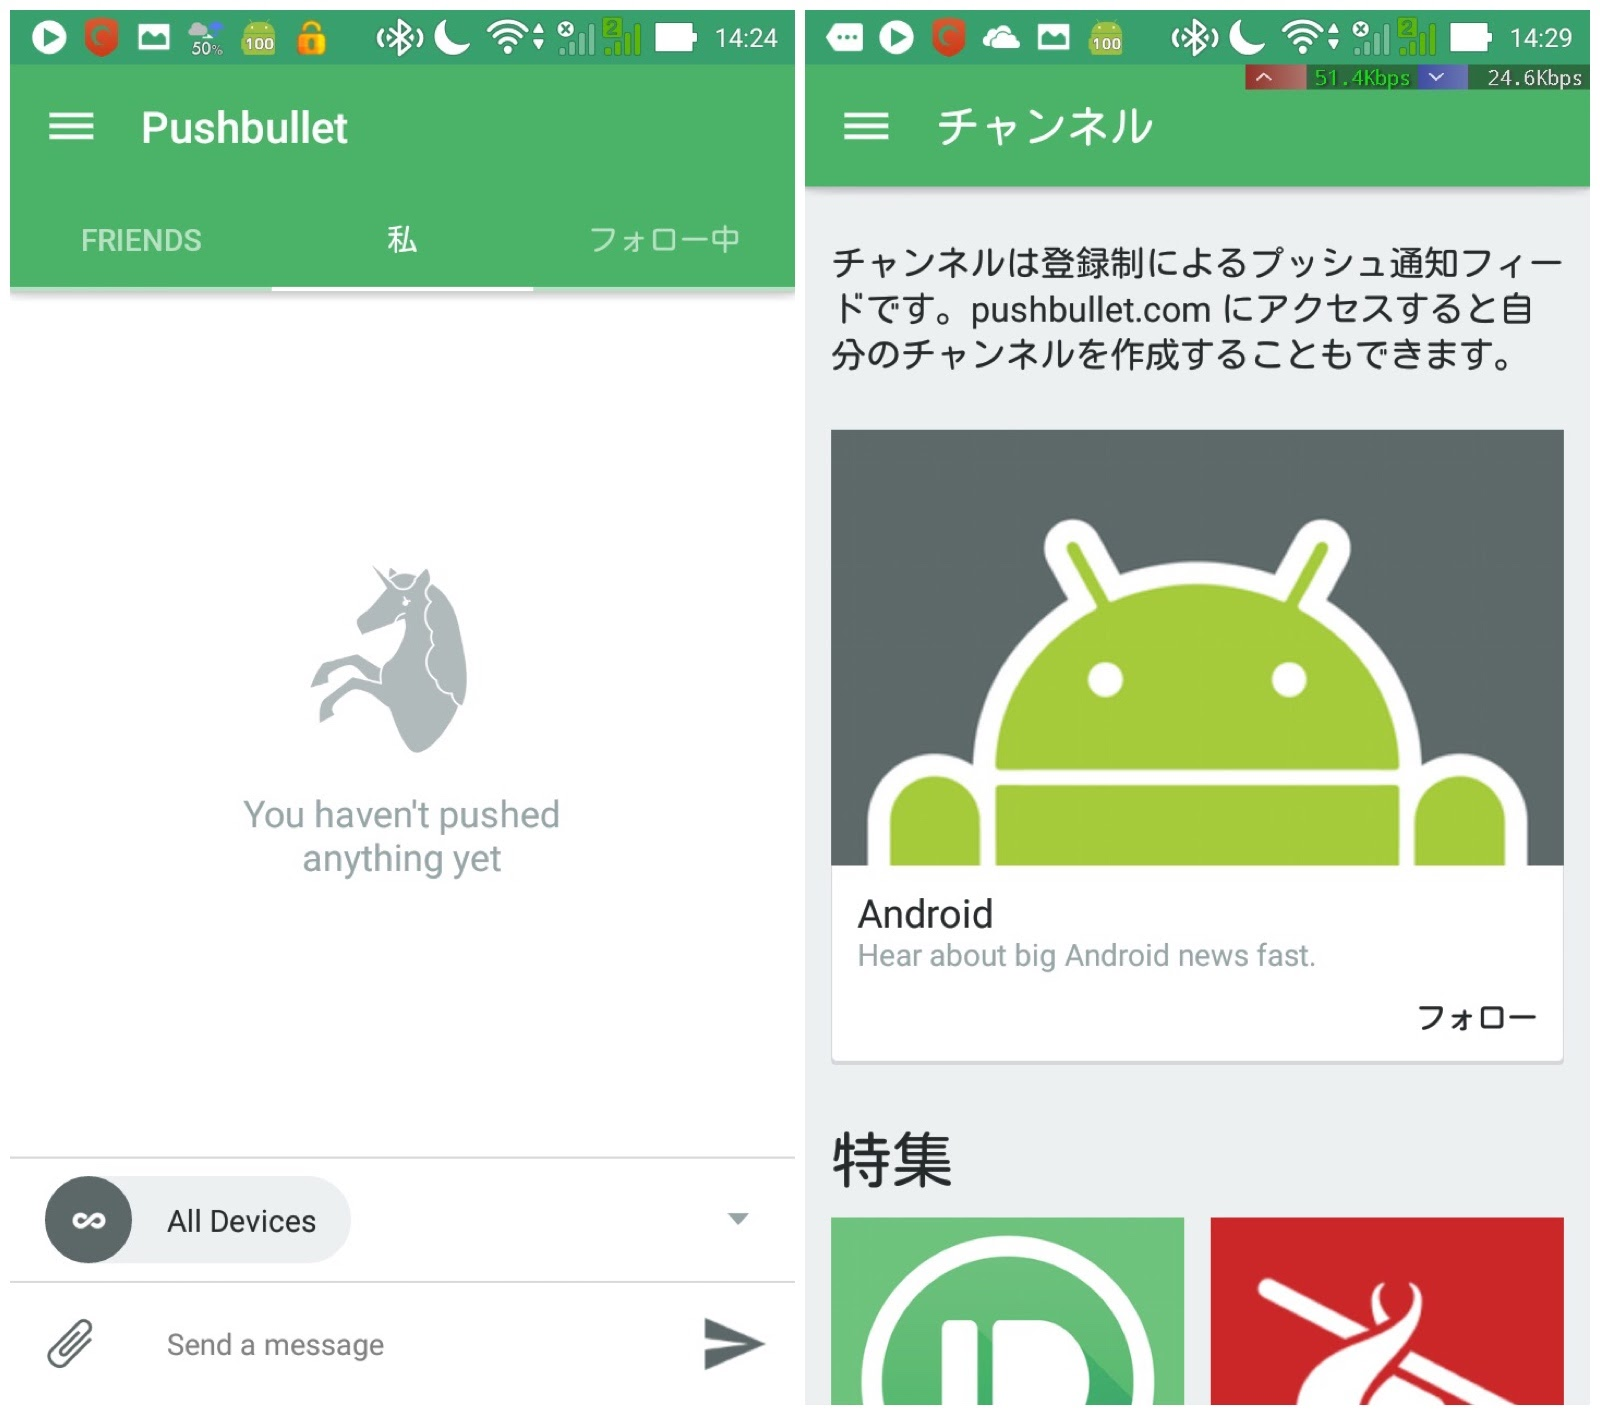 0990-201508_Pushbullet Android 01